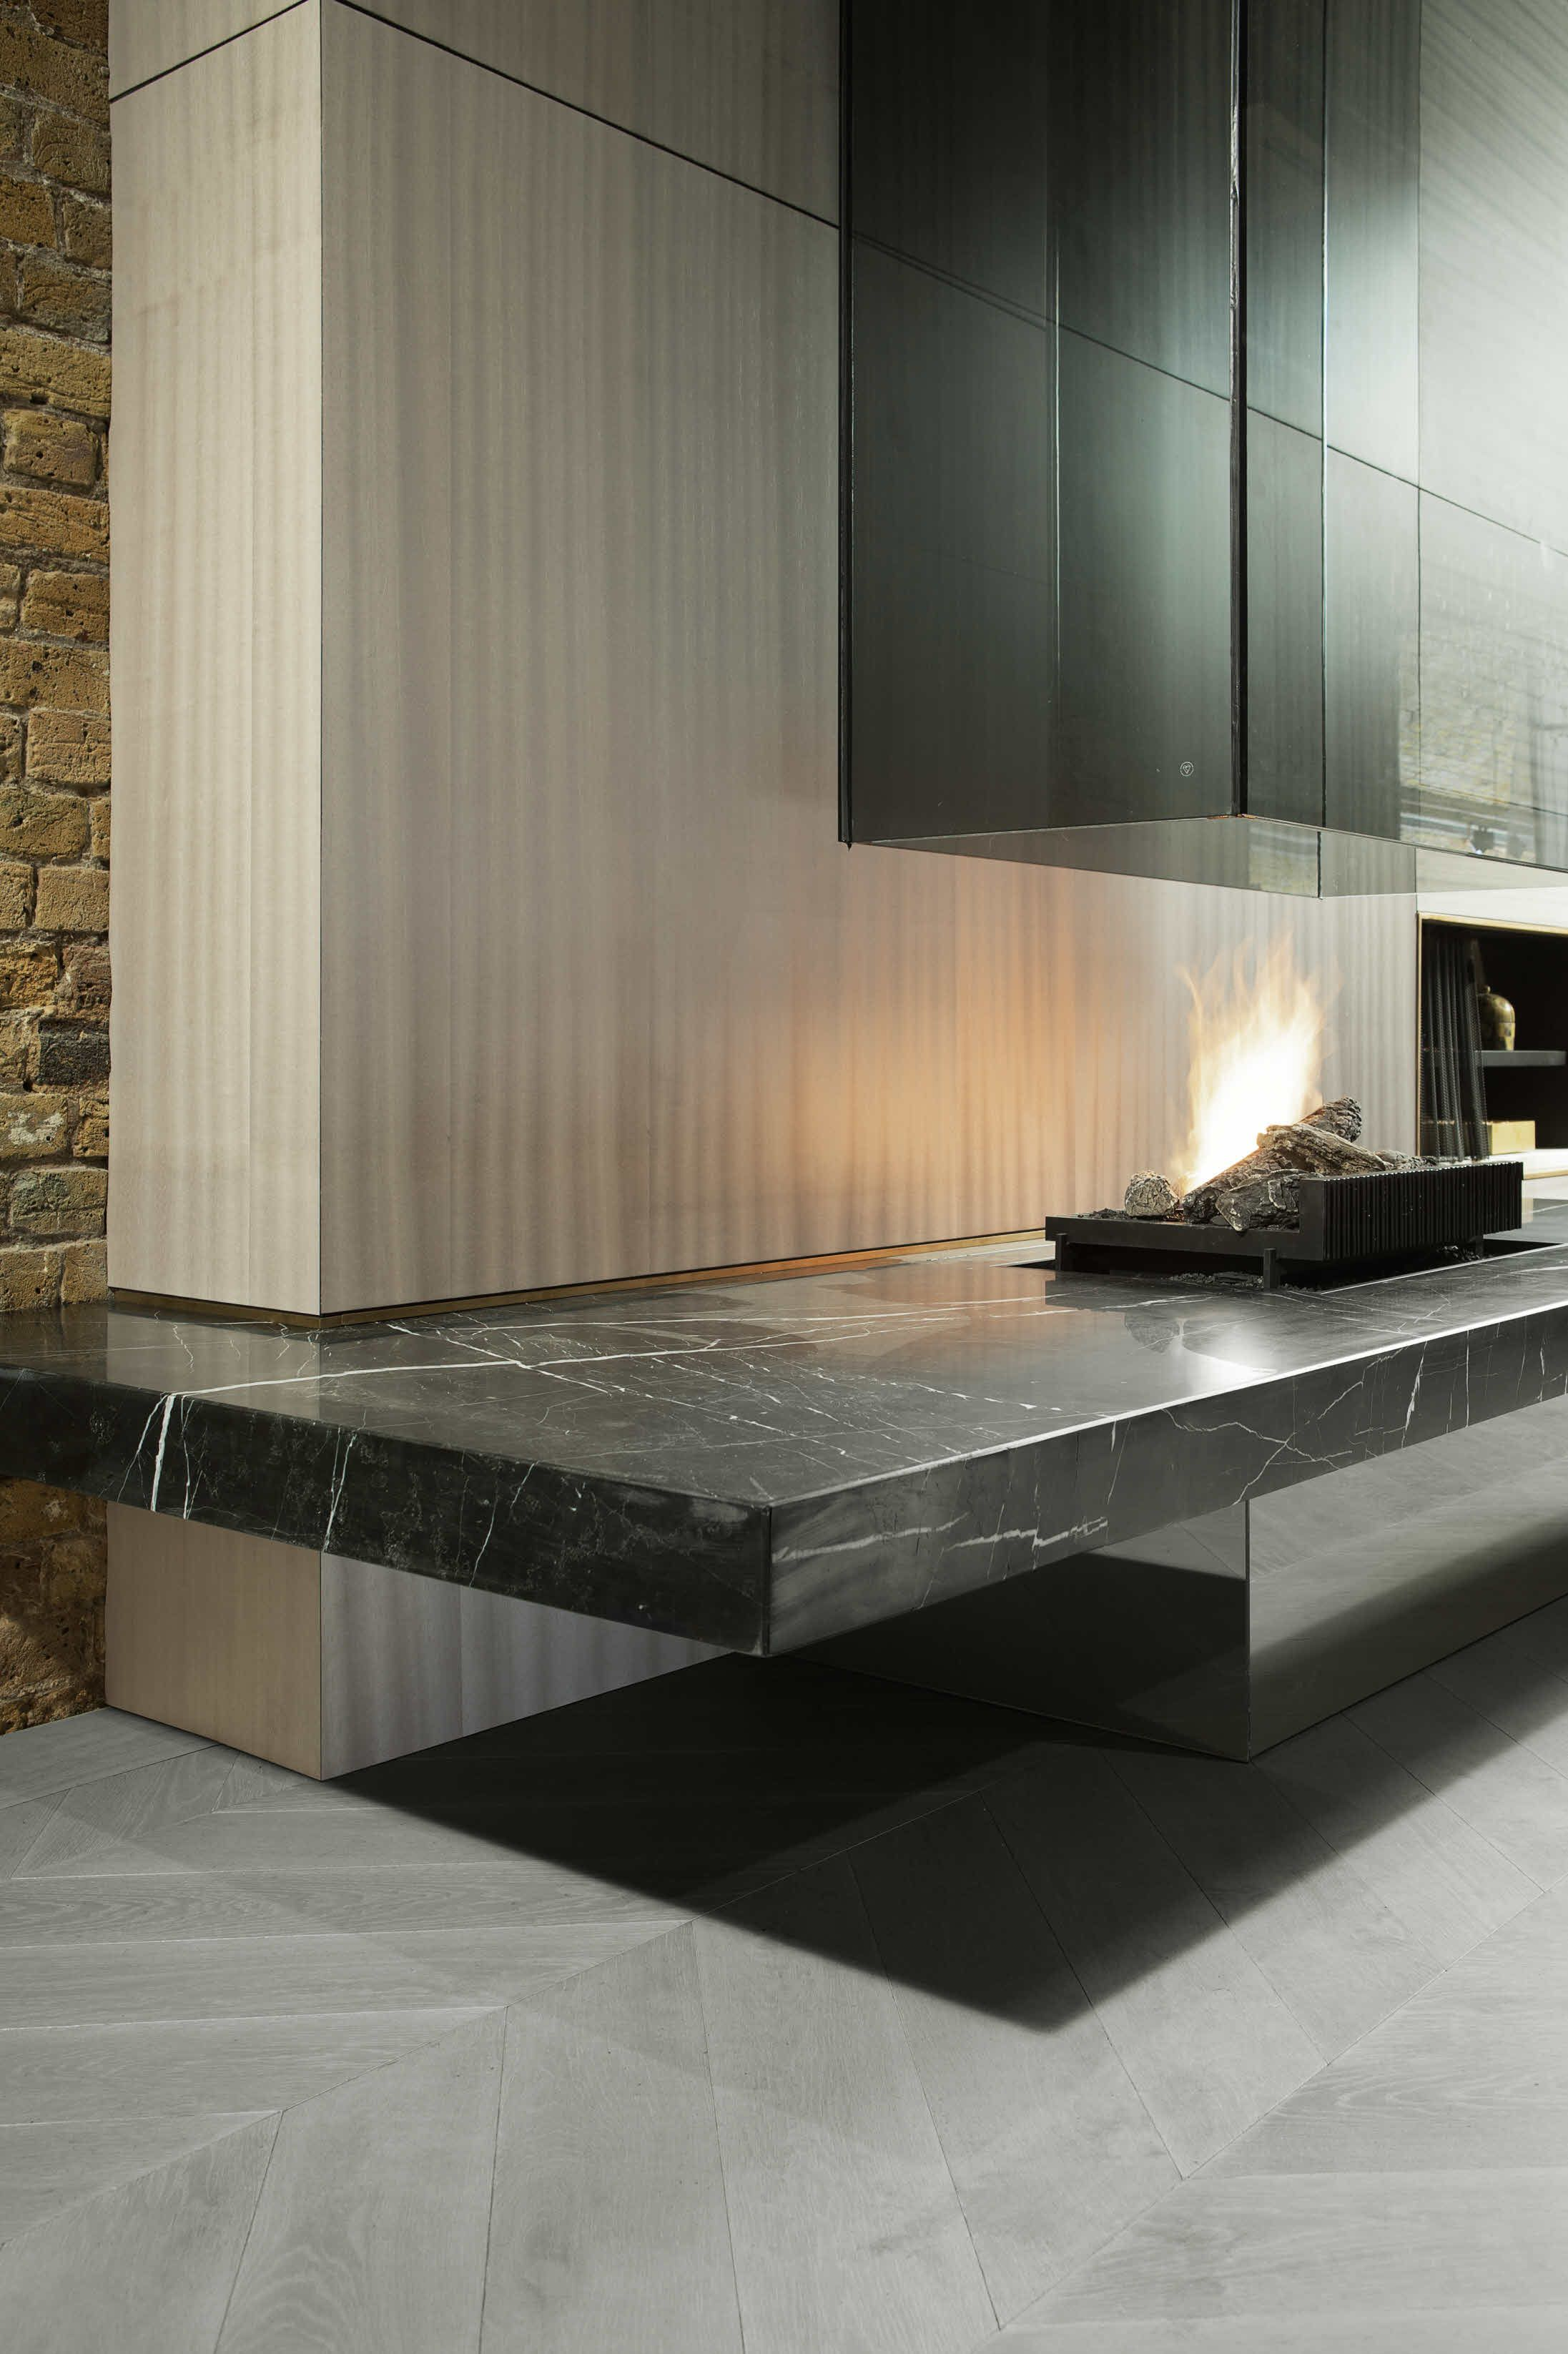 Poggenpohl Amsterdam Poggenpohl The Fourth Wall Concept Dream Home Fireplace